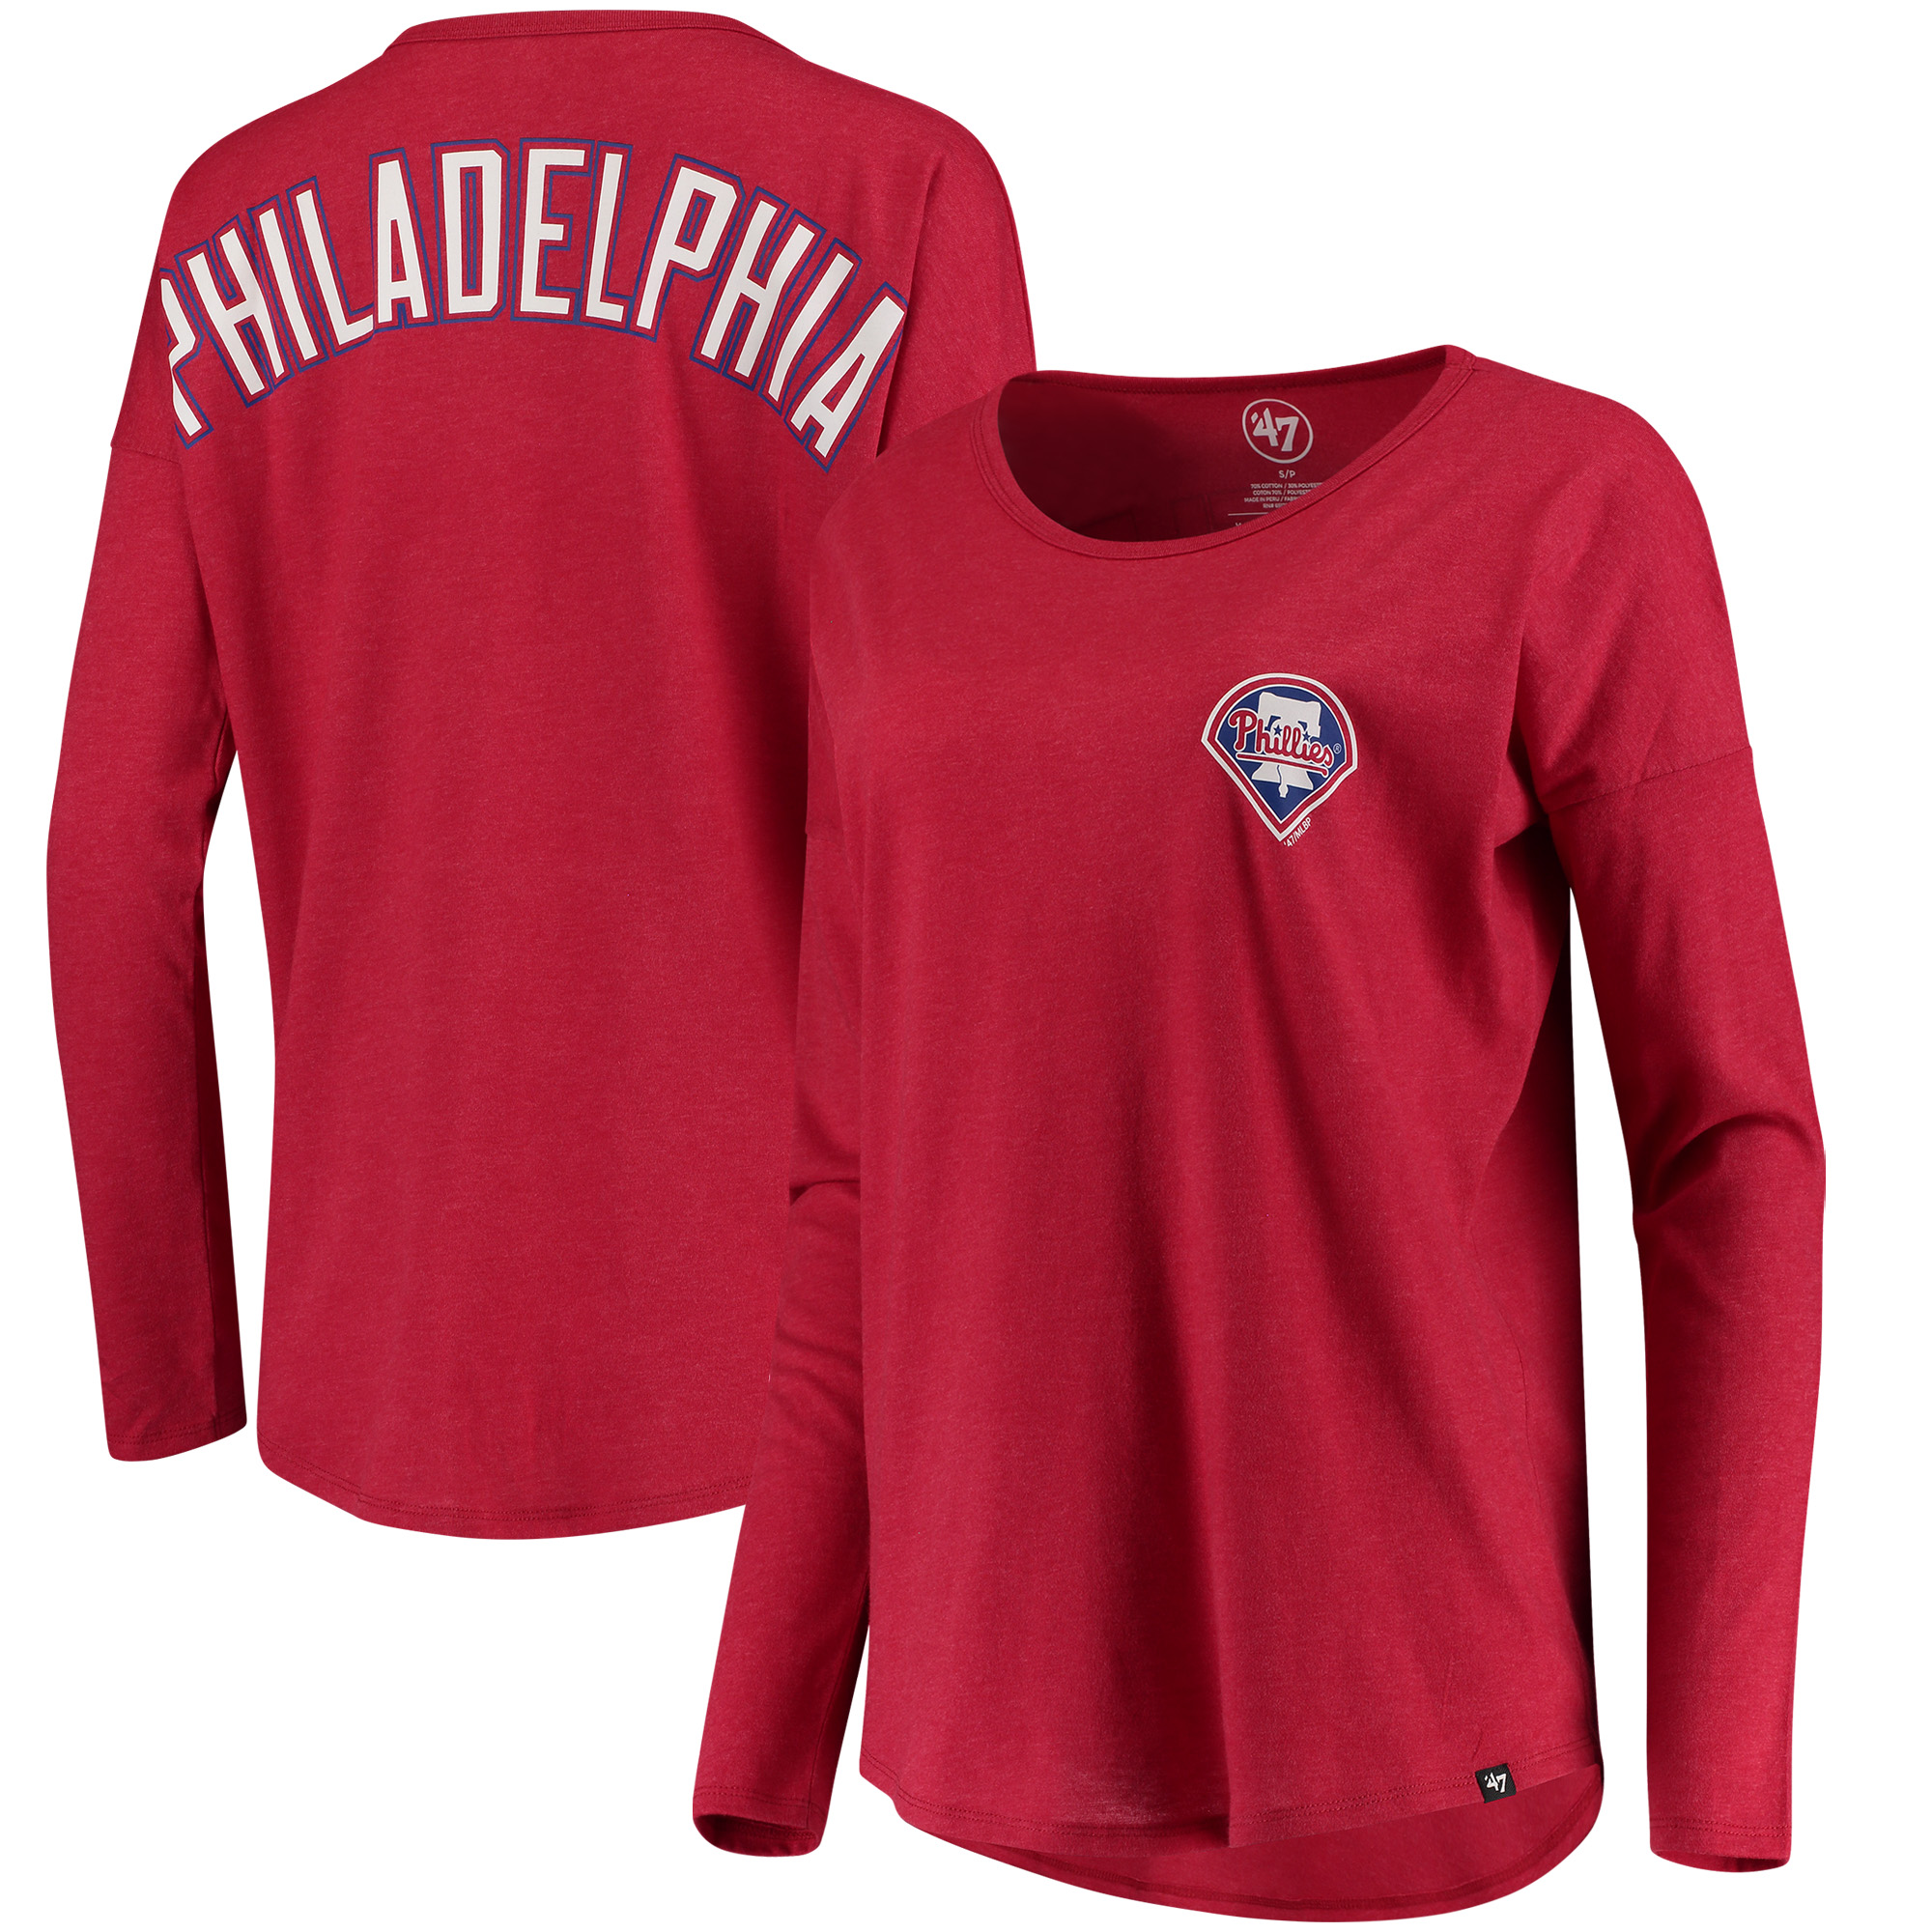 Philadelphia Phillies '47 Women's Courtside Long Sleeve T-Shirt - Red